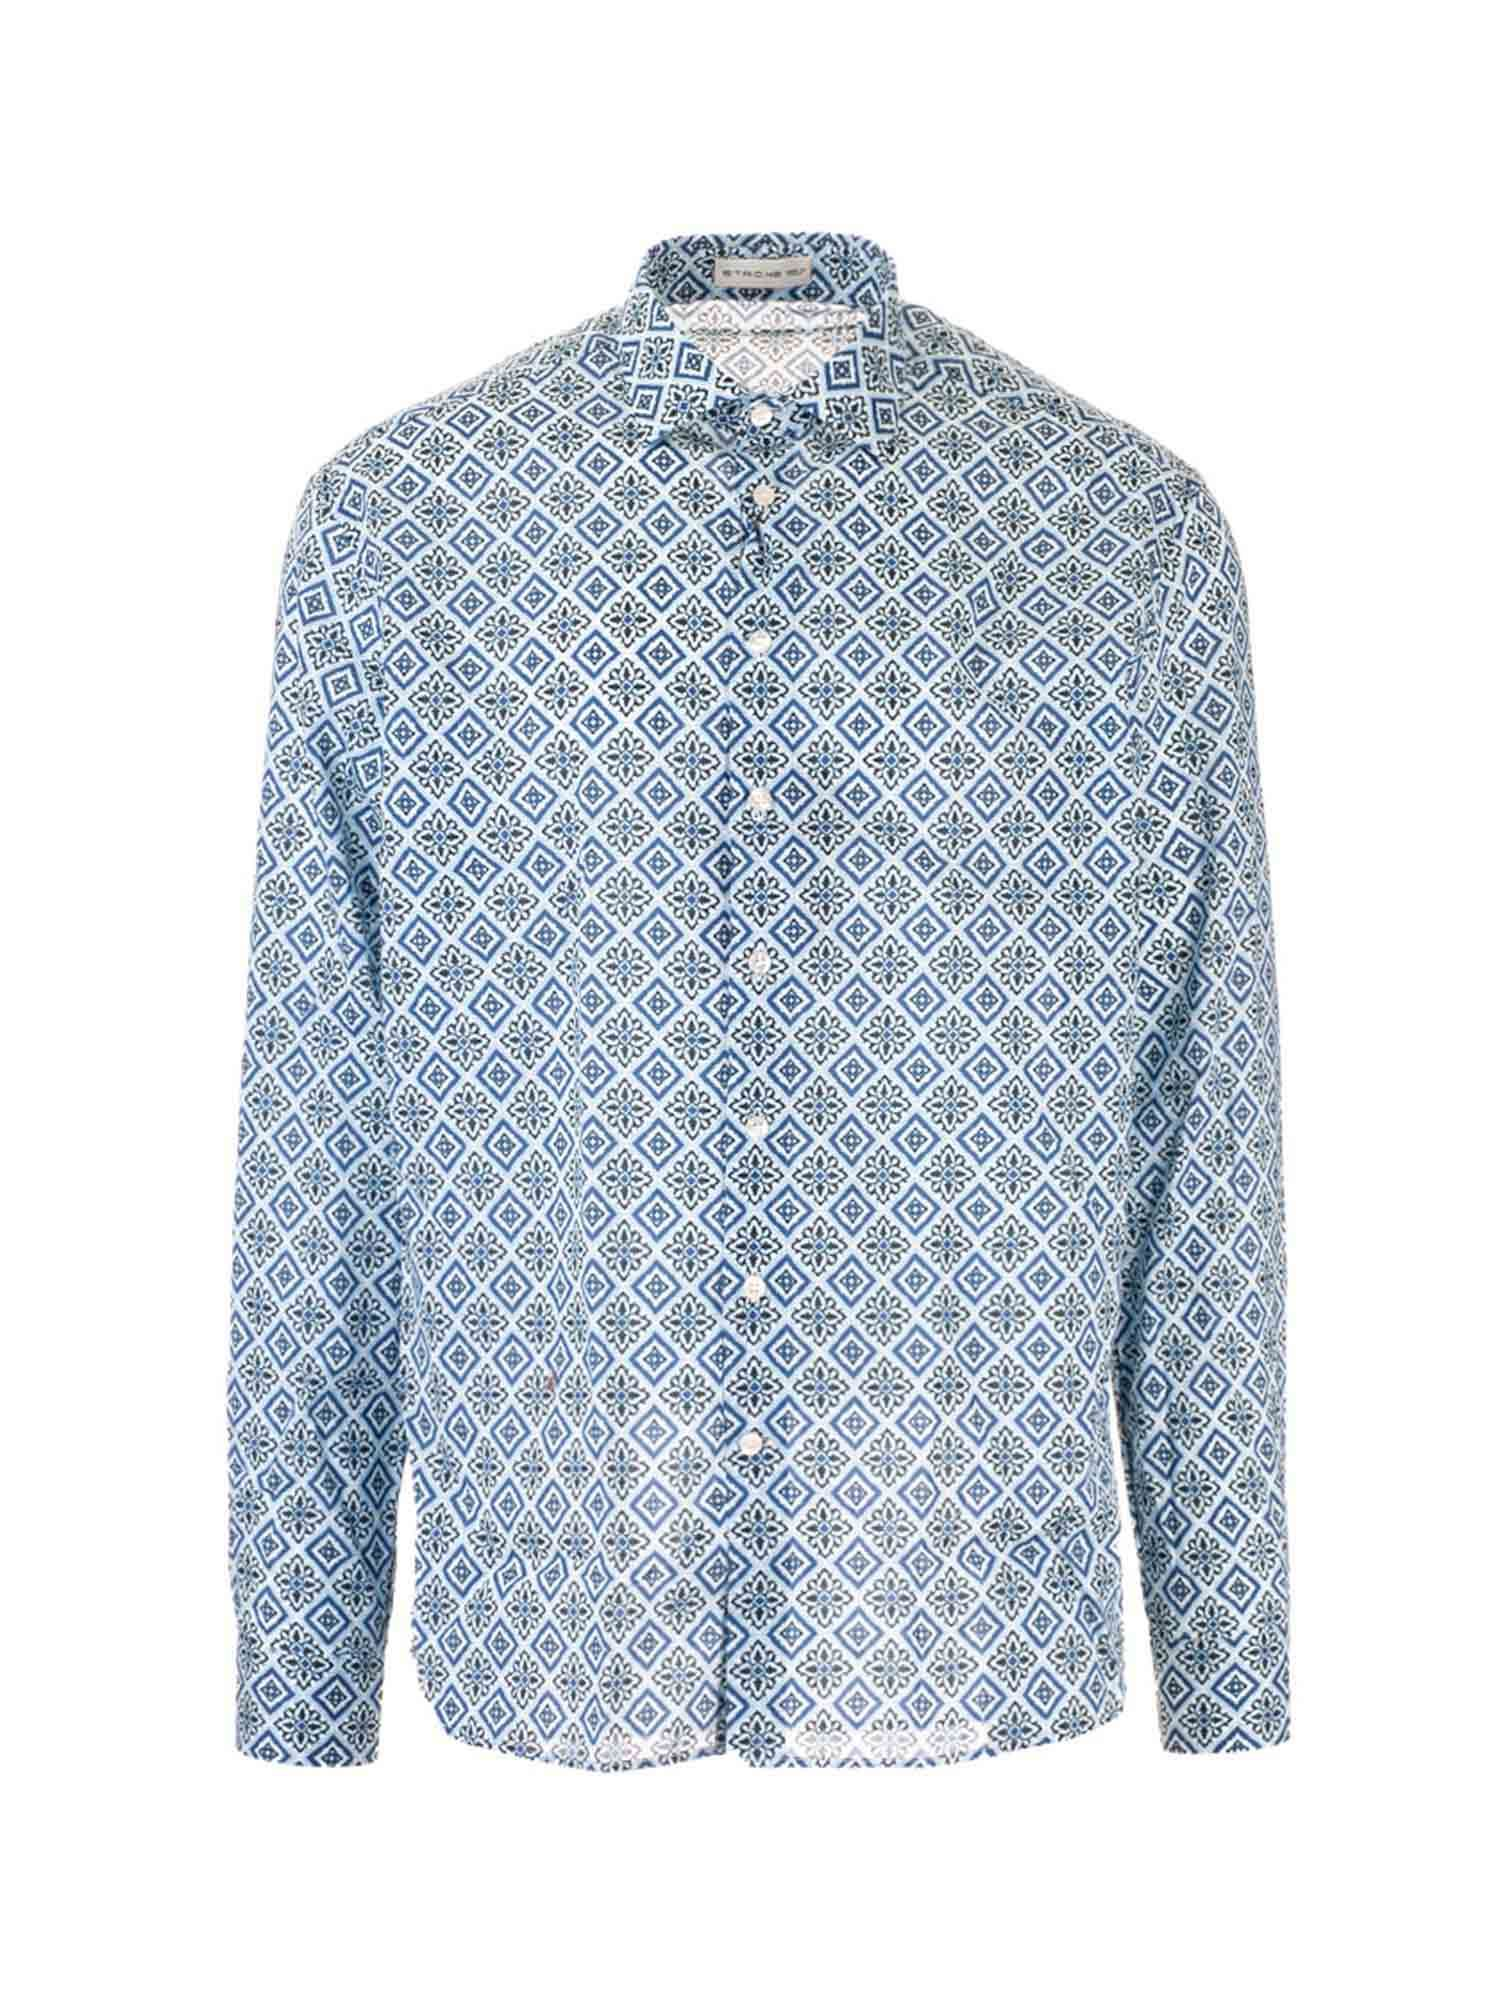 Etro ALL-OVER PRINTS SHIRT IN LIGHT BLUE